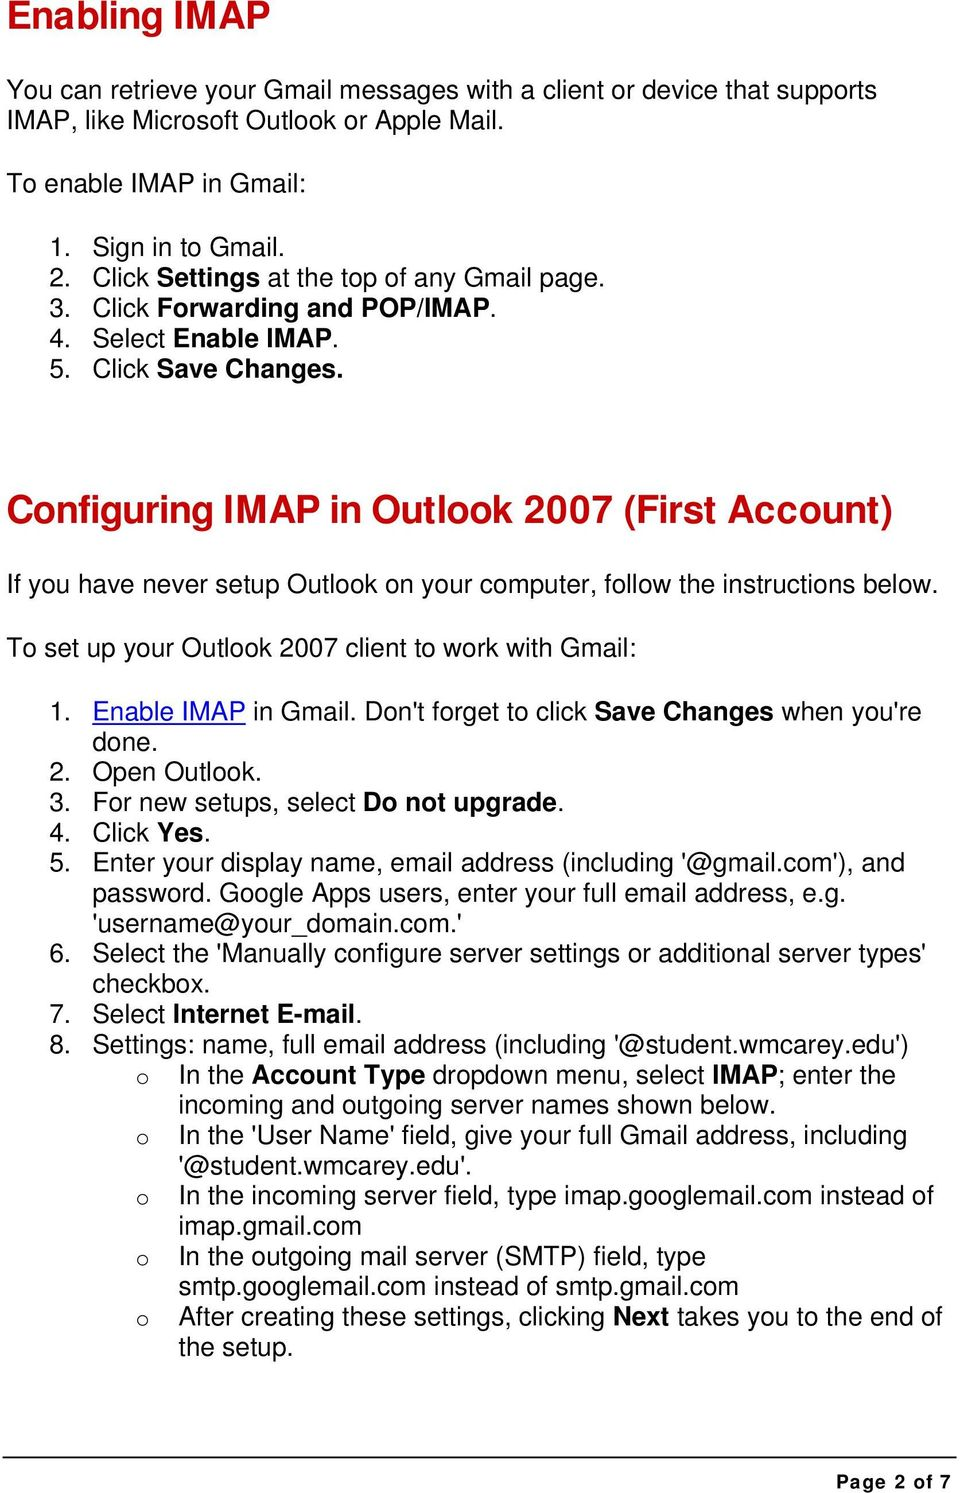 Configuring IMAP in Outlook 2007 (First Account) If you have never setup Outlook on your computer, follow the instructions below. To set up your Outlook 2007 client to work with Gmail: 1.